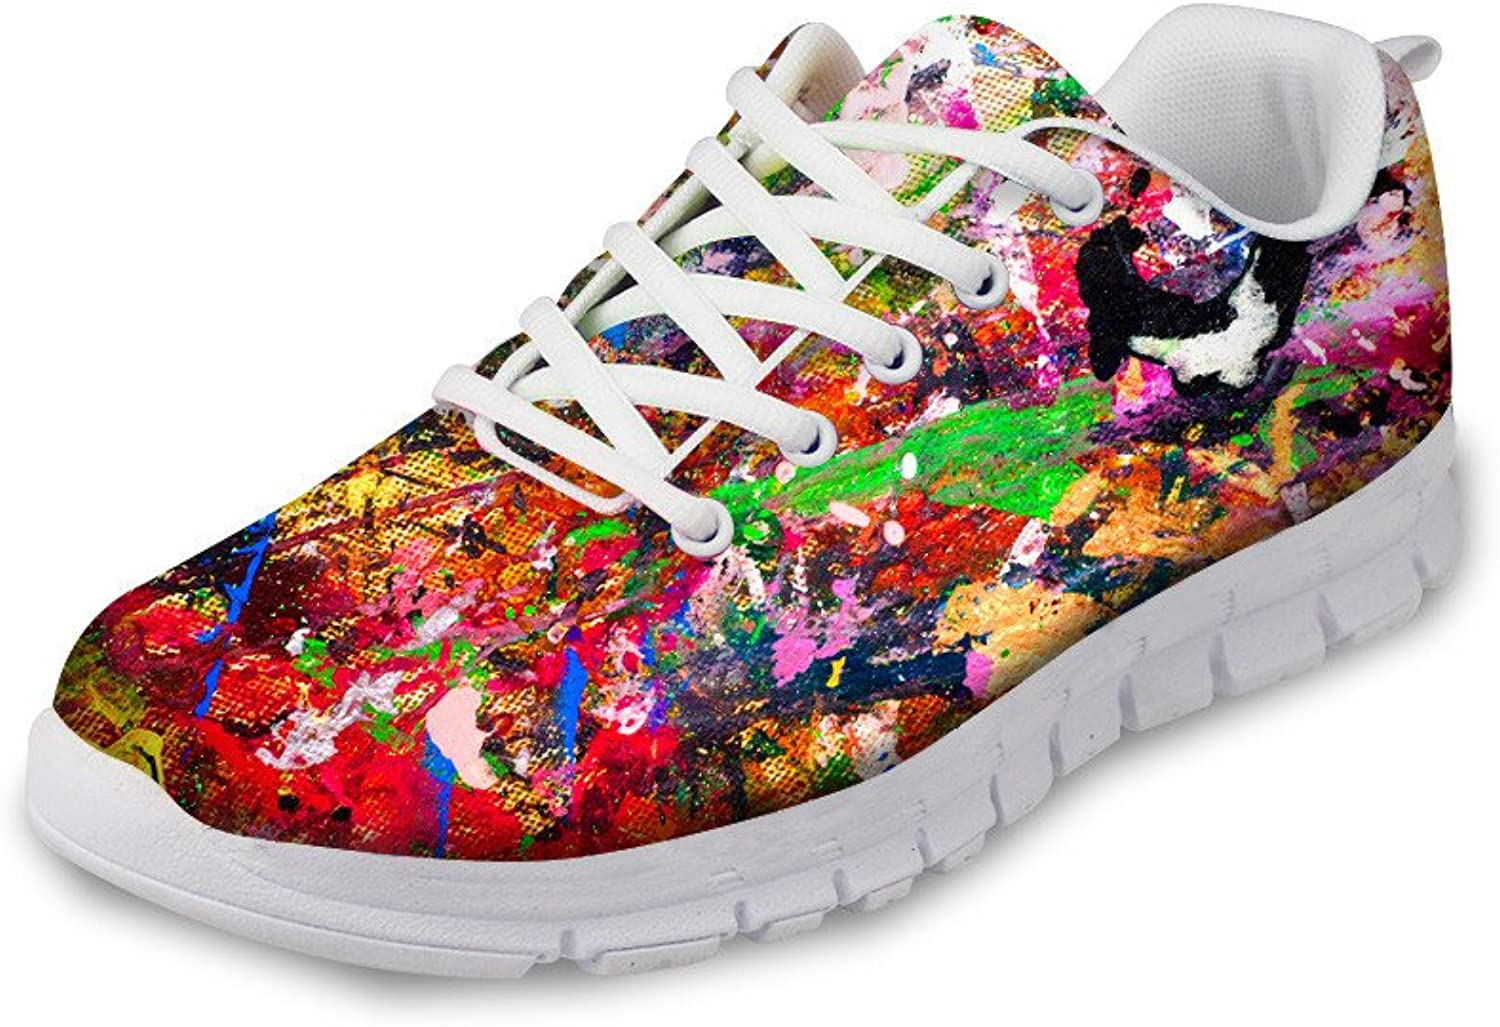 DeePrint Breathable Lace up Trainer Athletic Breathable Sport shoes Girls Athletic Sneakers